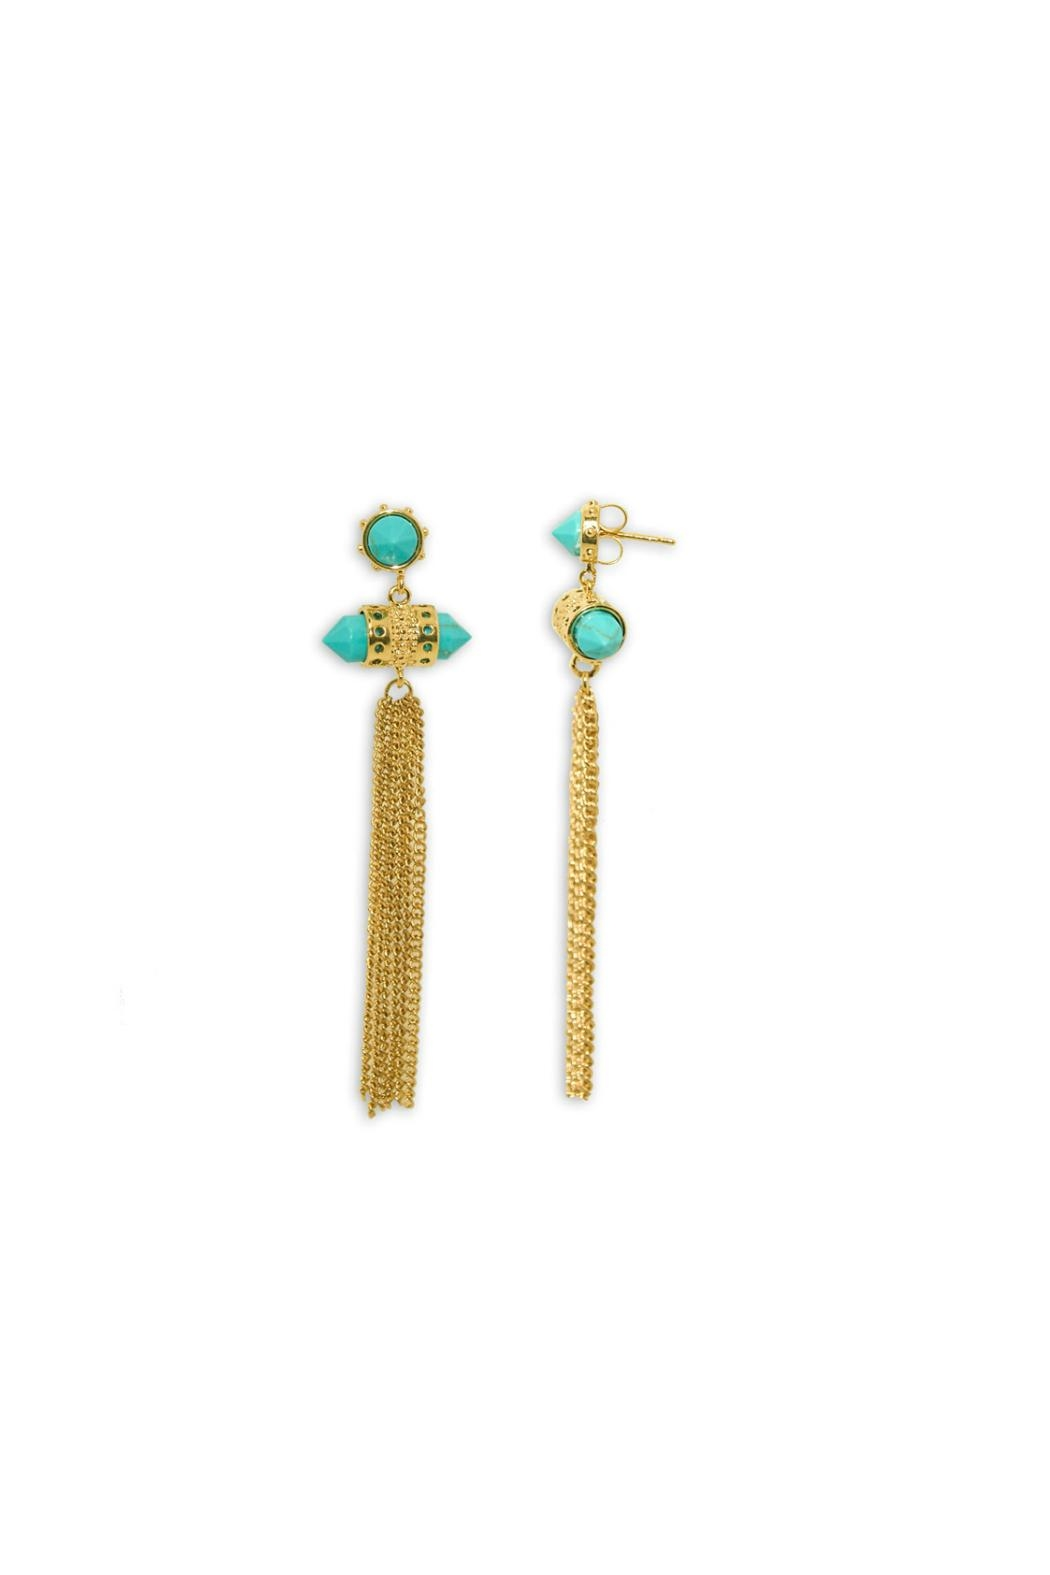 Gemma Collection Turquoise Tassel Earrings - Main Image